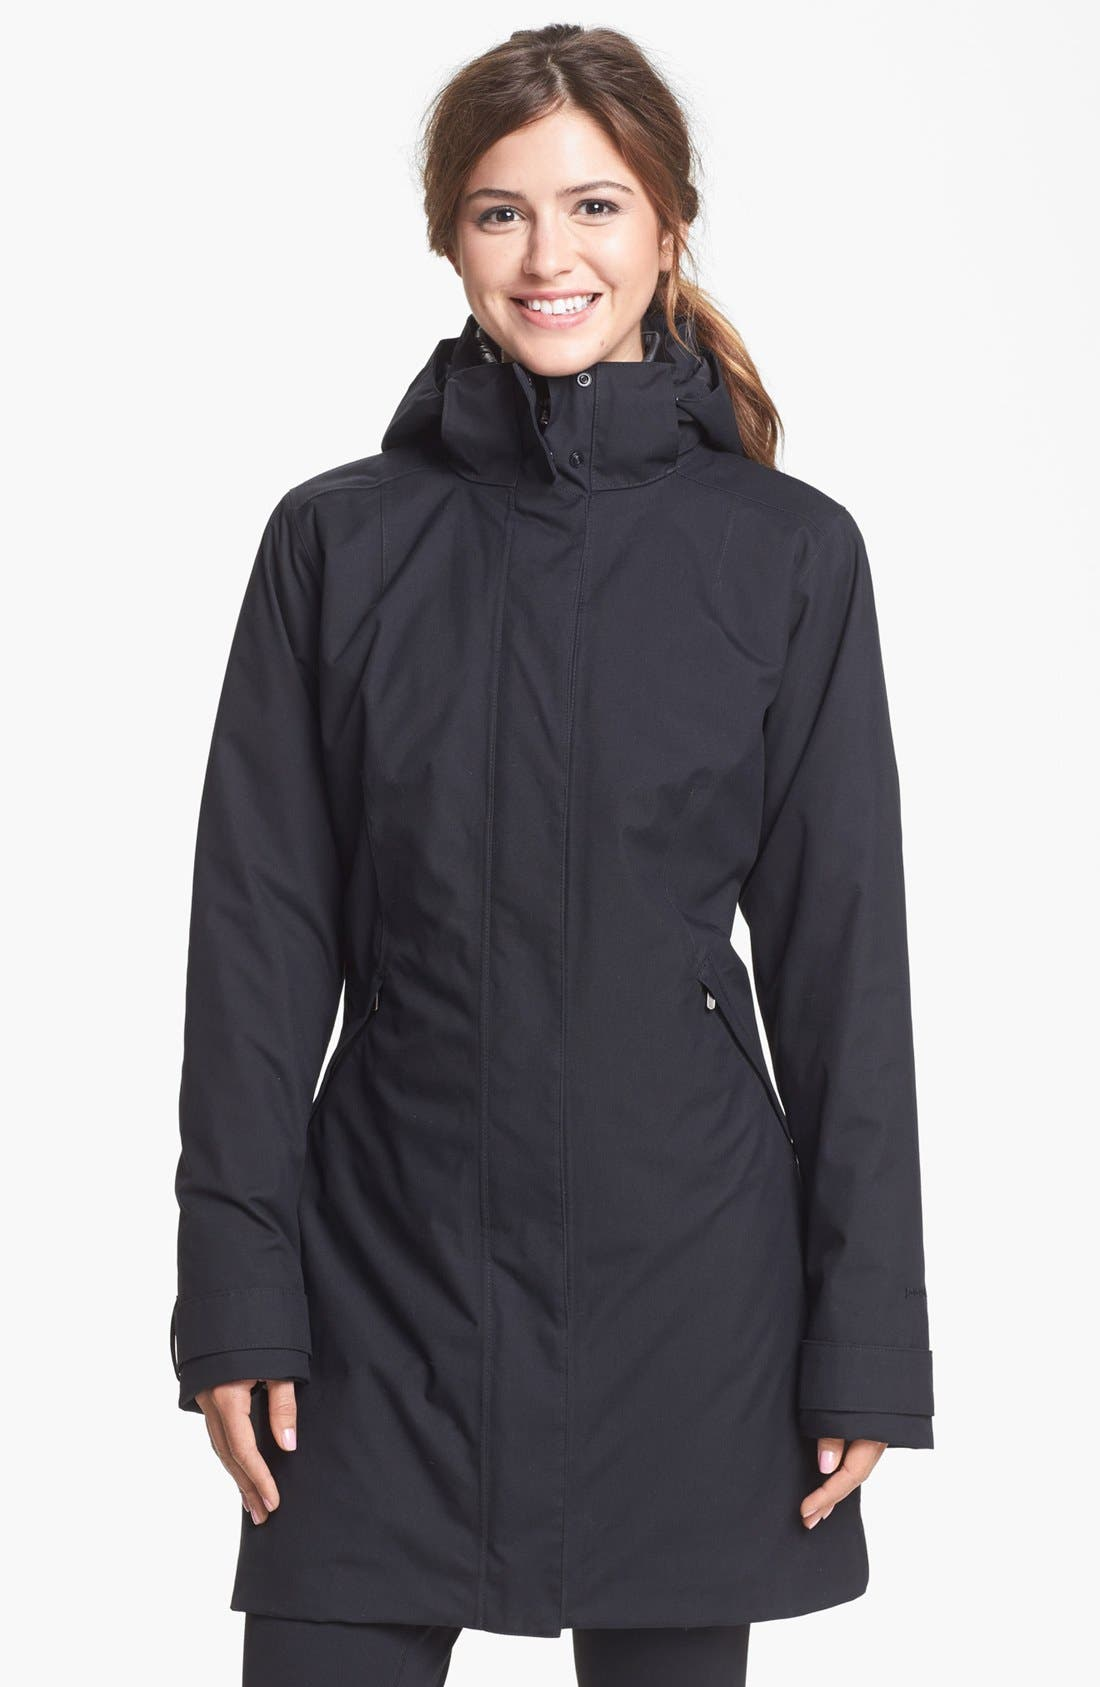 Main Image - Patagonia 'Vosque' 3-in-1 Parka